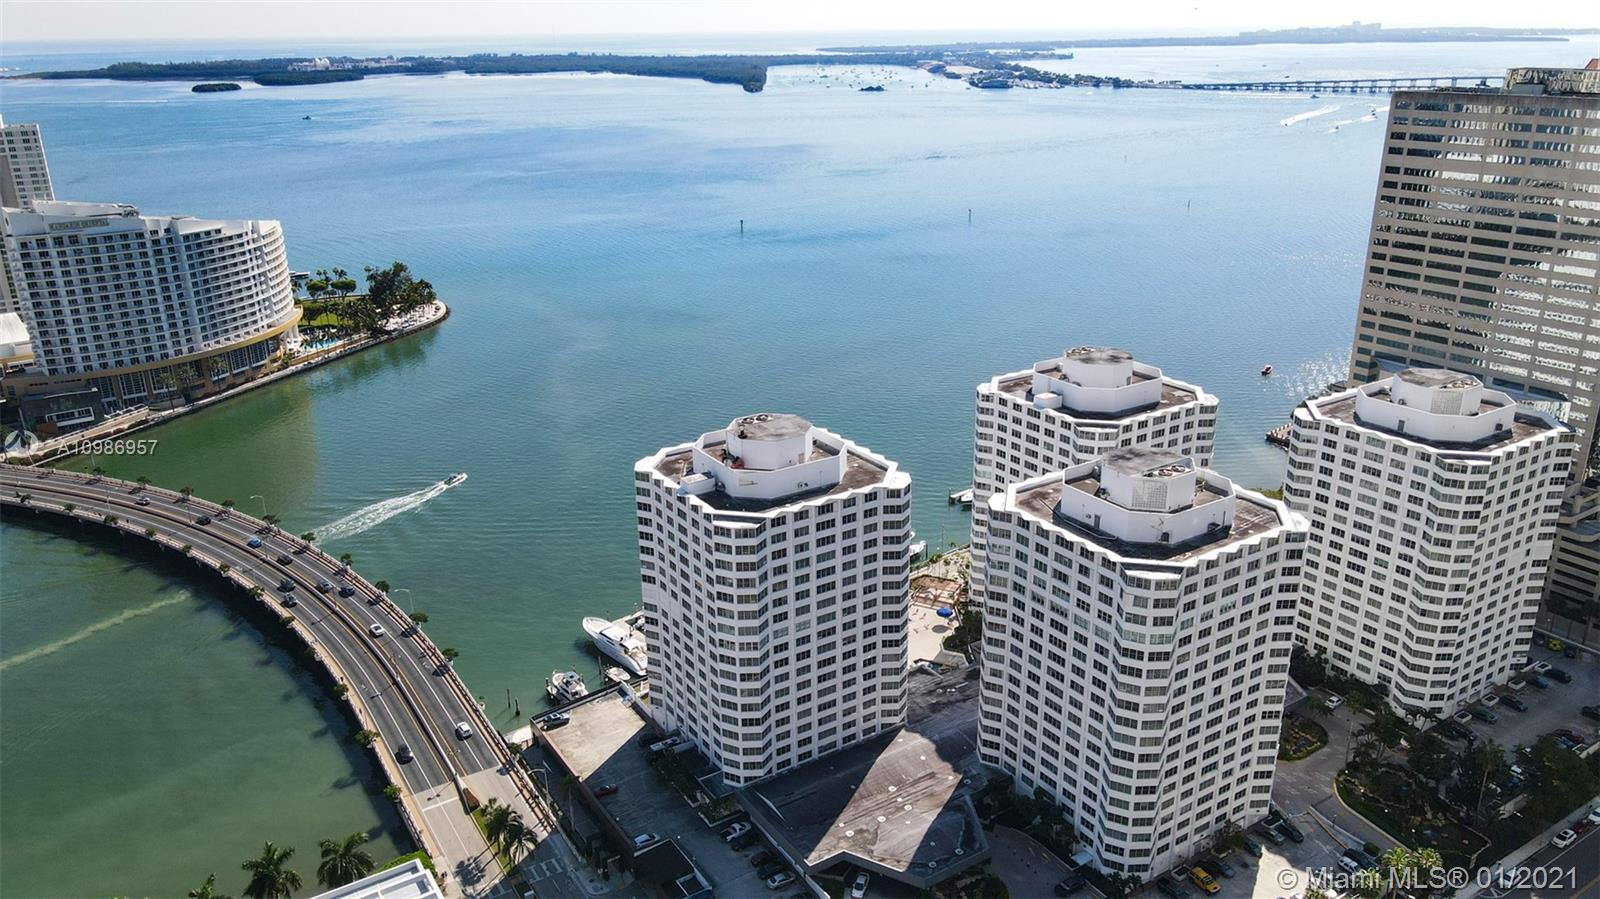 Spacious and bright condo in the heart of Brickell located on the top 20th floor of the Four Ambassadors, Tower 1. This unit has 2 bedrooms, with large master and walk-in closet, 2 full bathrooms and tile floors throughout, kitchen with beautiful granite countertops, wood cabinets and stainless steel appliances. This building offers great amenities right on the Intracoastal; valet parking, two large pools with bay views, jacuzzi,  grocery store, hair salon, gym and marina. The maintenance fee includes electricity and water, plus exterior insurance coverage. Walking distance to Brickell City Center, banking and more.